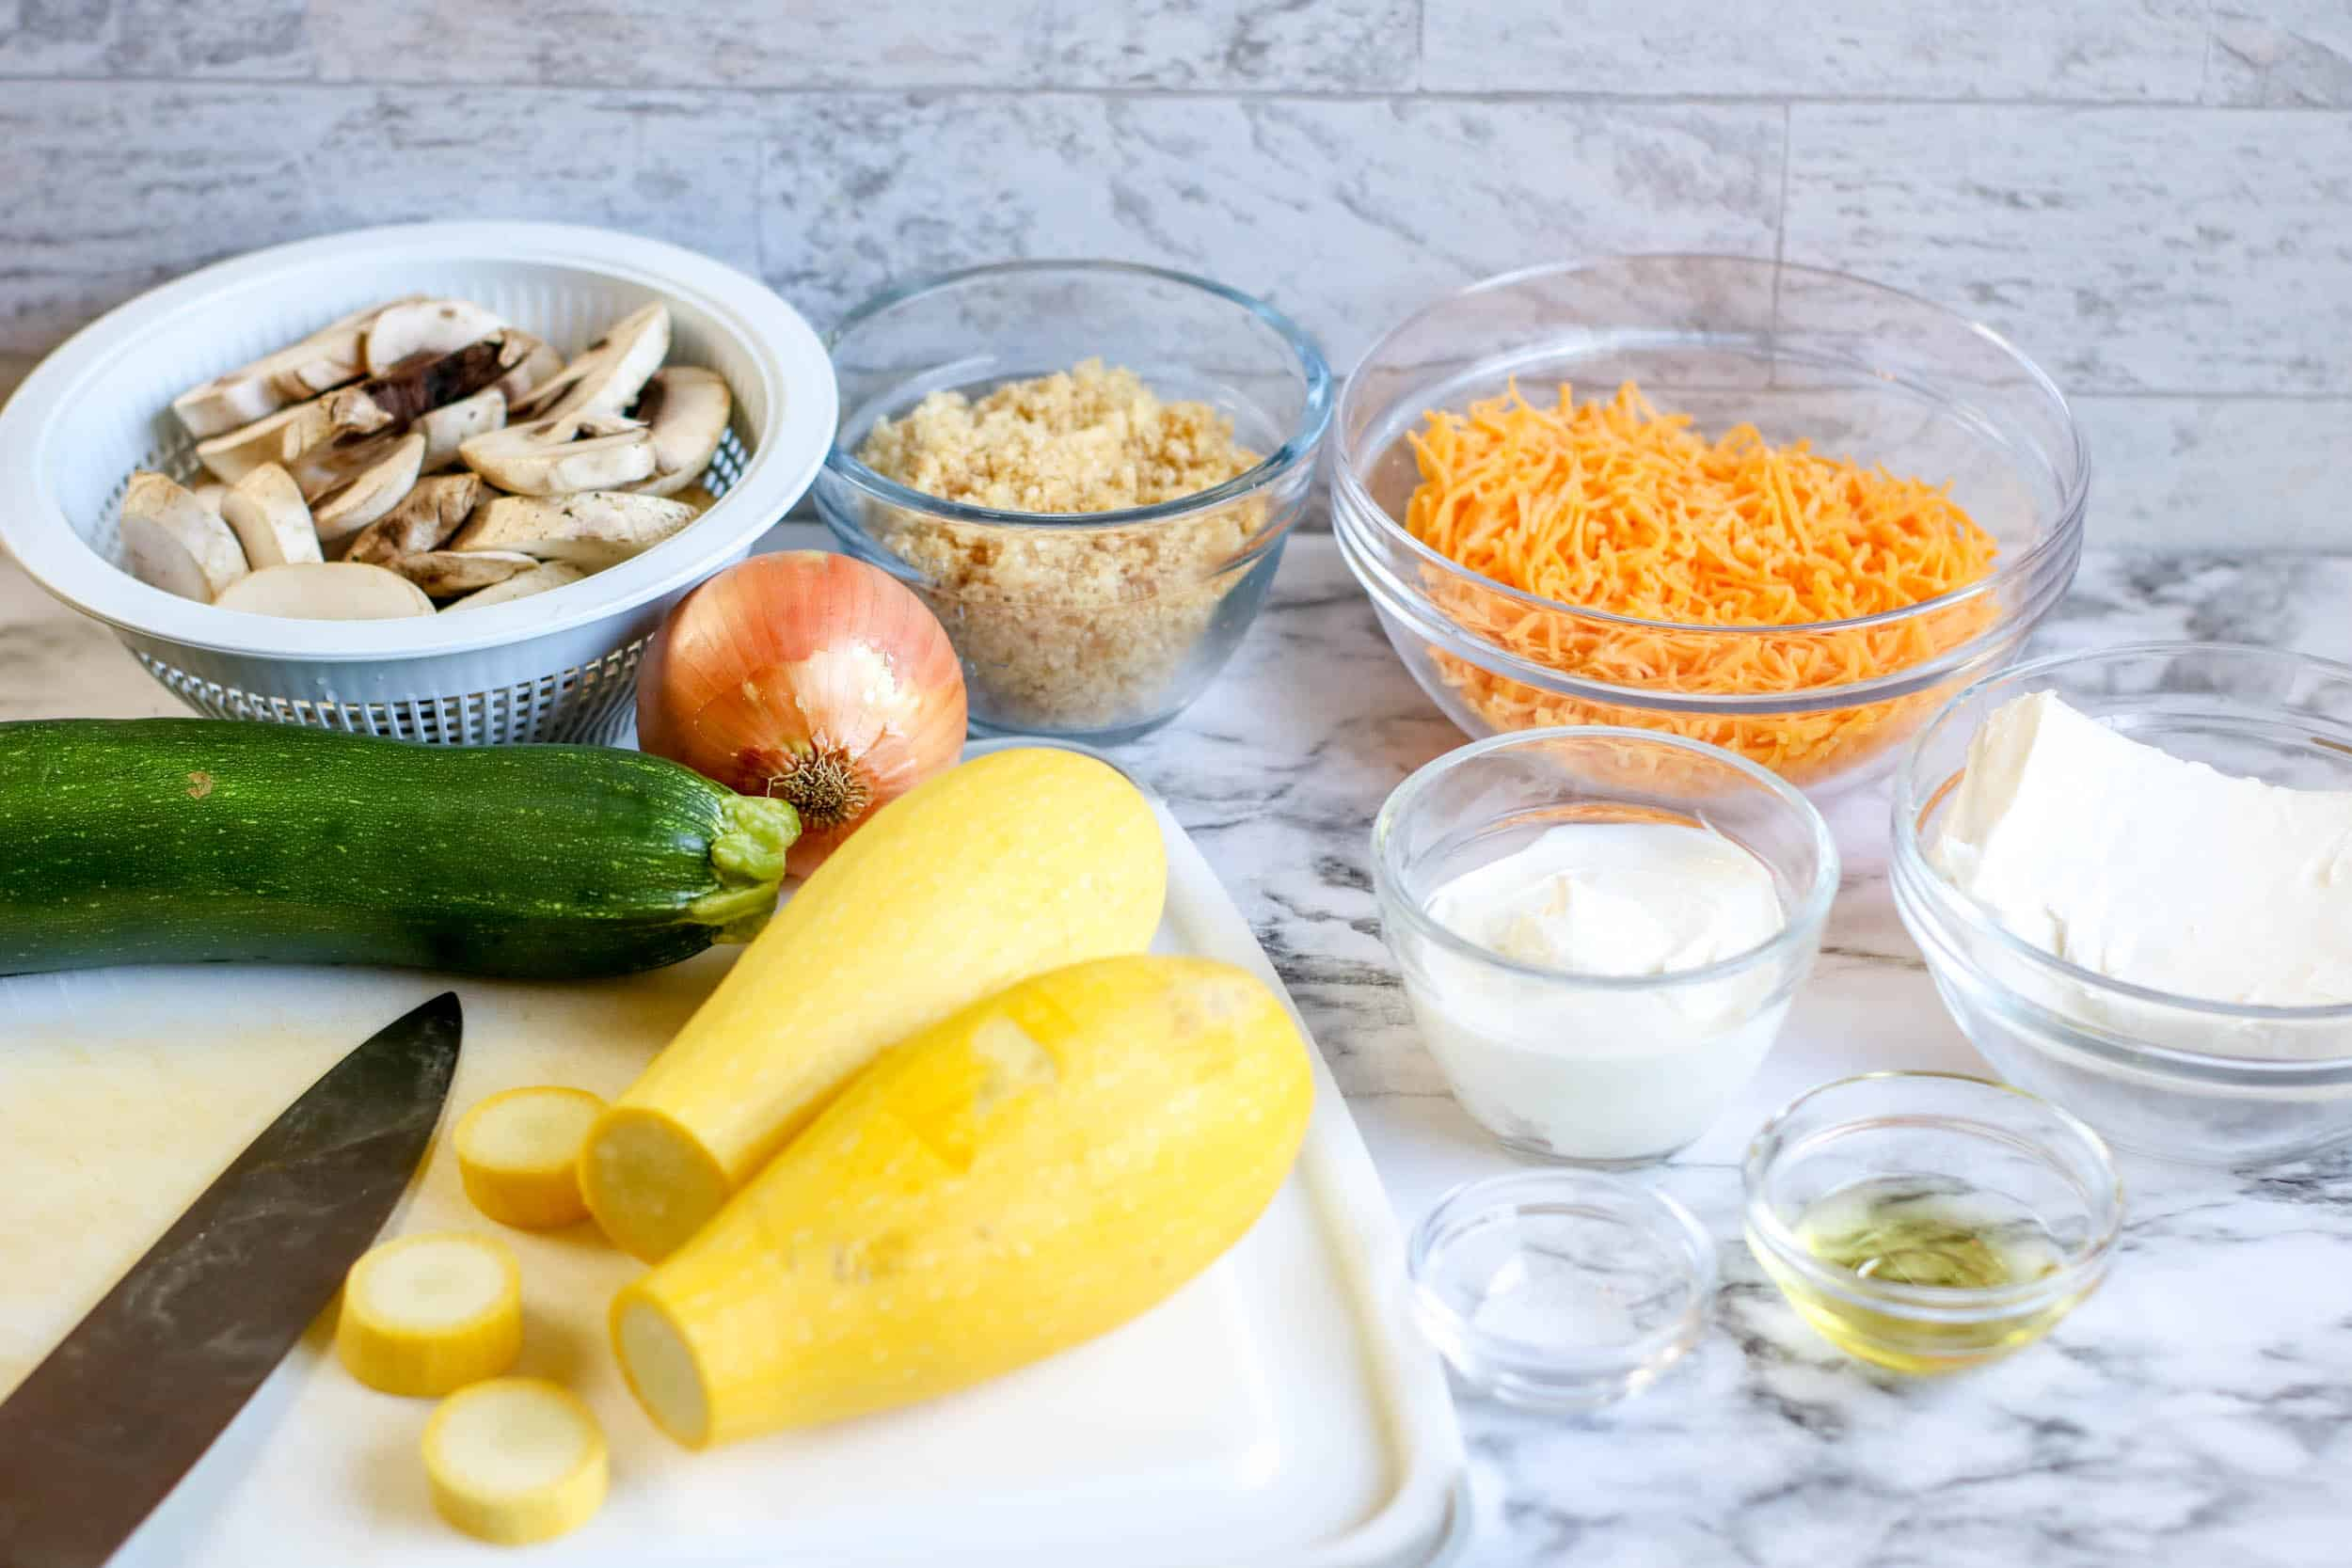 Low Carb Squash Casserole ingredients